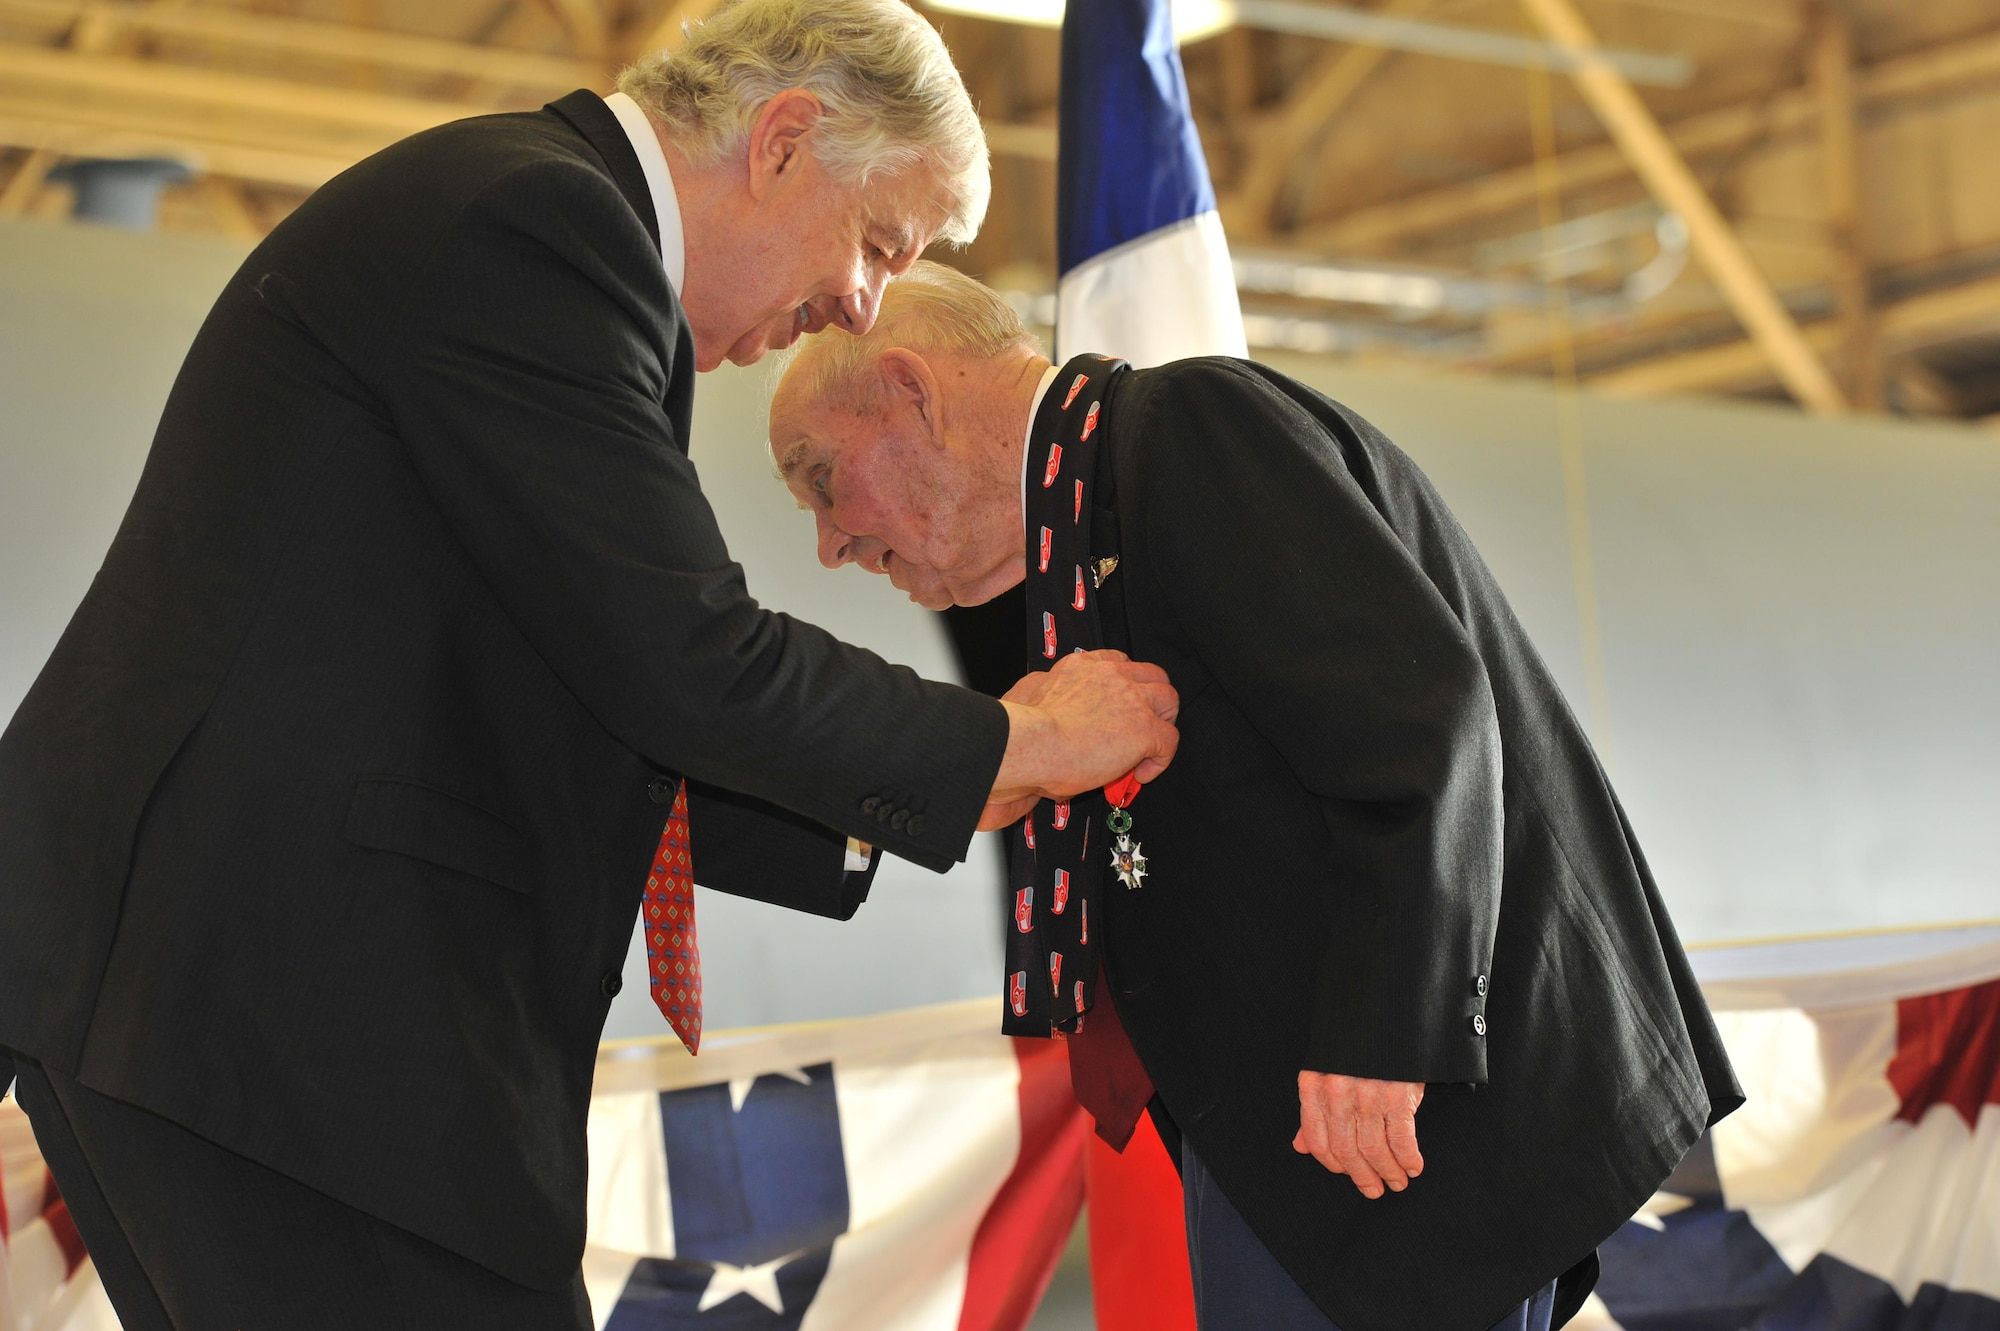 Jack Cowan of the Honorary Consul of France, presents the French Legion of Honor Medal to retired Maj. Clarence Grimes Oct. 25, 2013, at Fairchild Air Force Base, Wash. The 92-year old was honored with the highest recognition by the French government for his contributions almost 70 years ago to defend and preserve the independence of France.